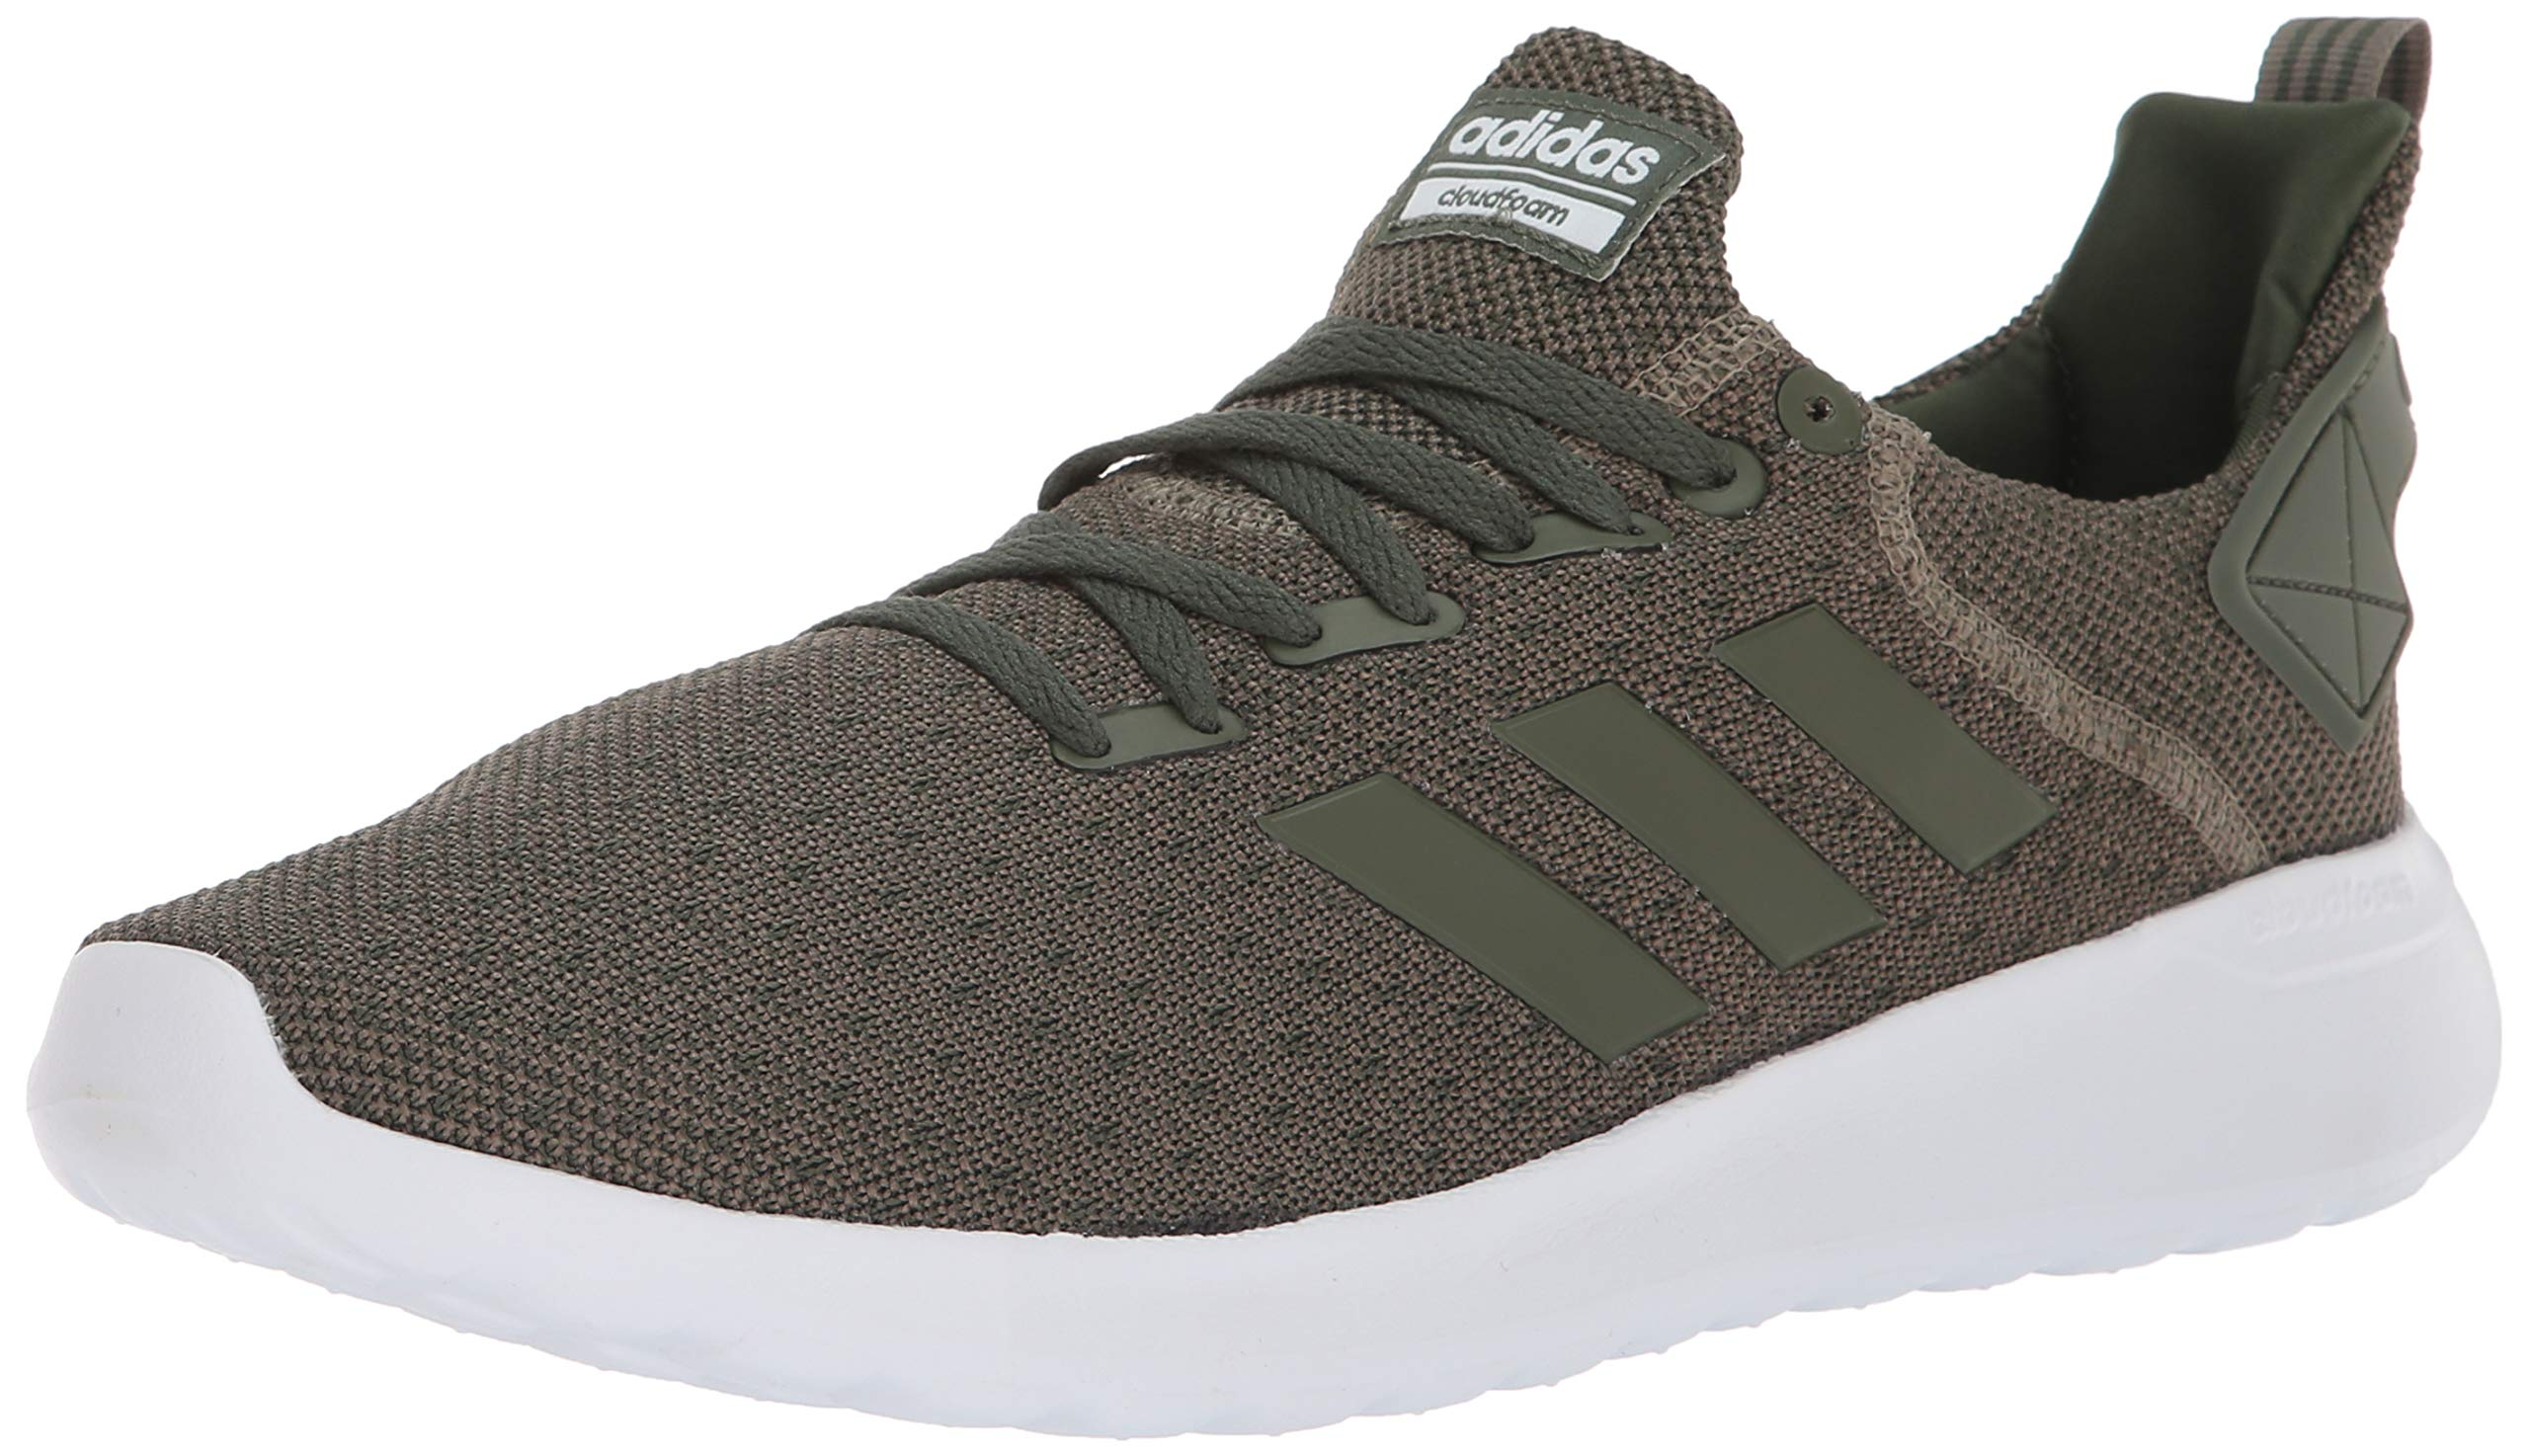 adidas Men's Lite Racer BYD Running Shoe, Trace Cargo/Base Green/White, 10 M US by adidas (Image #1)